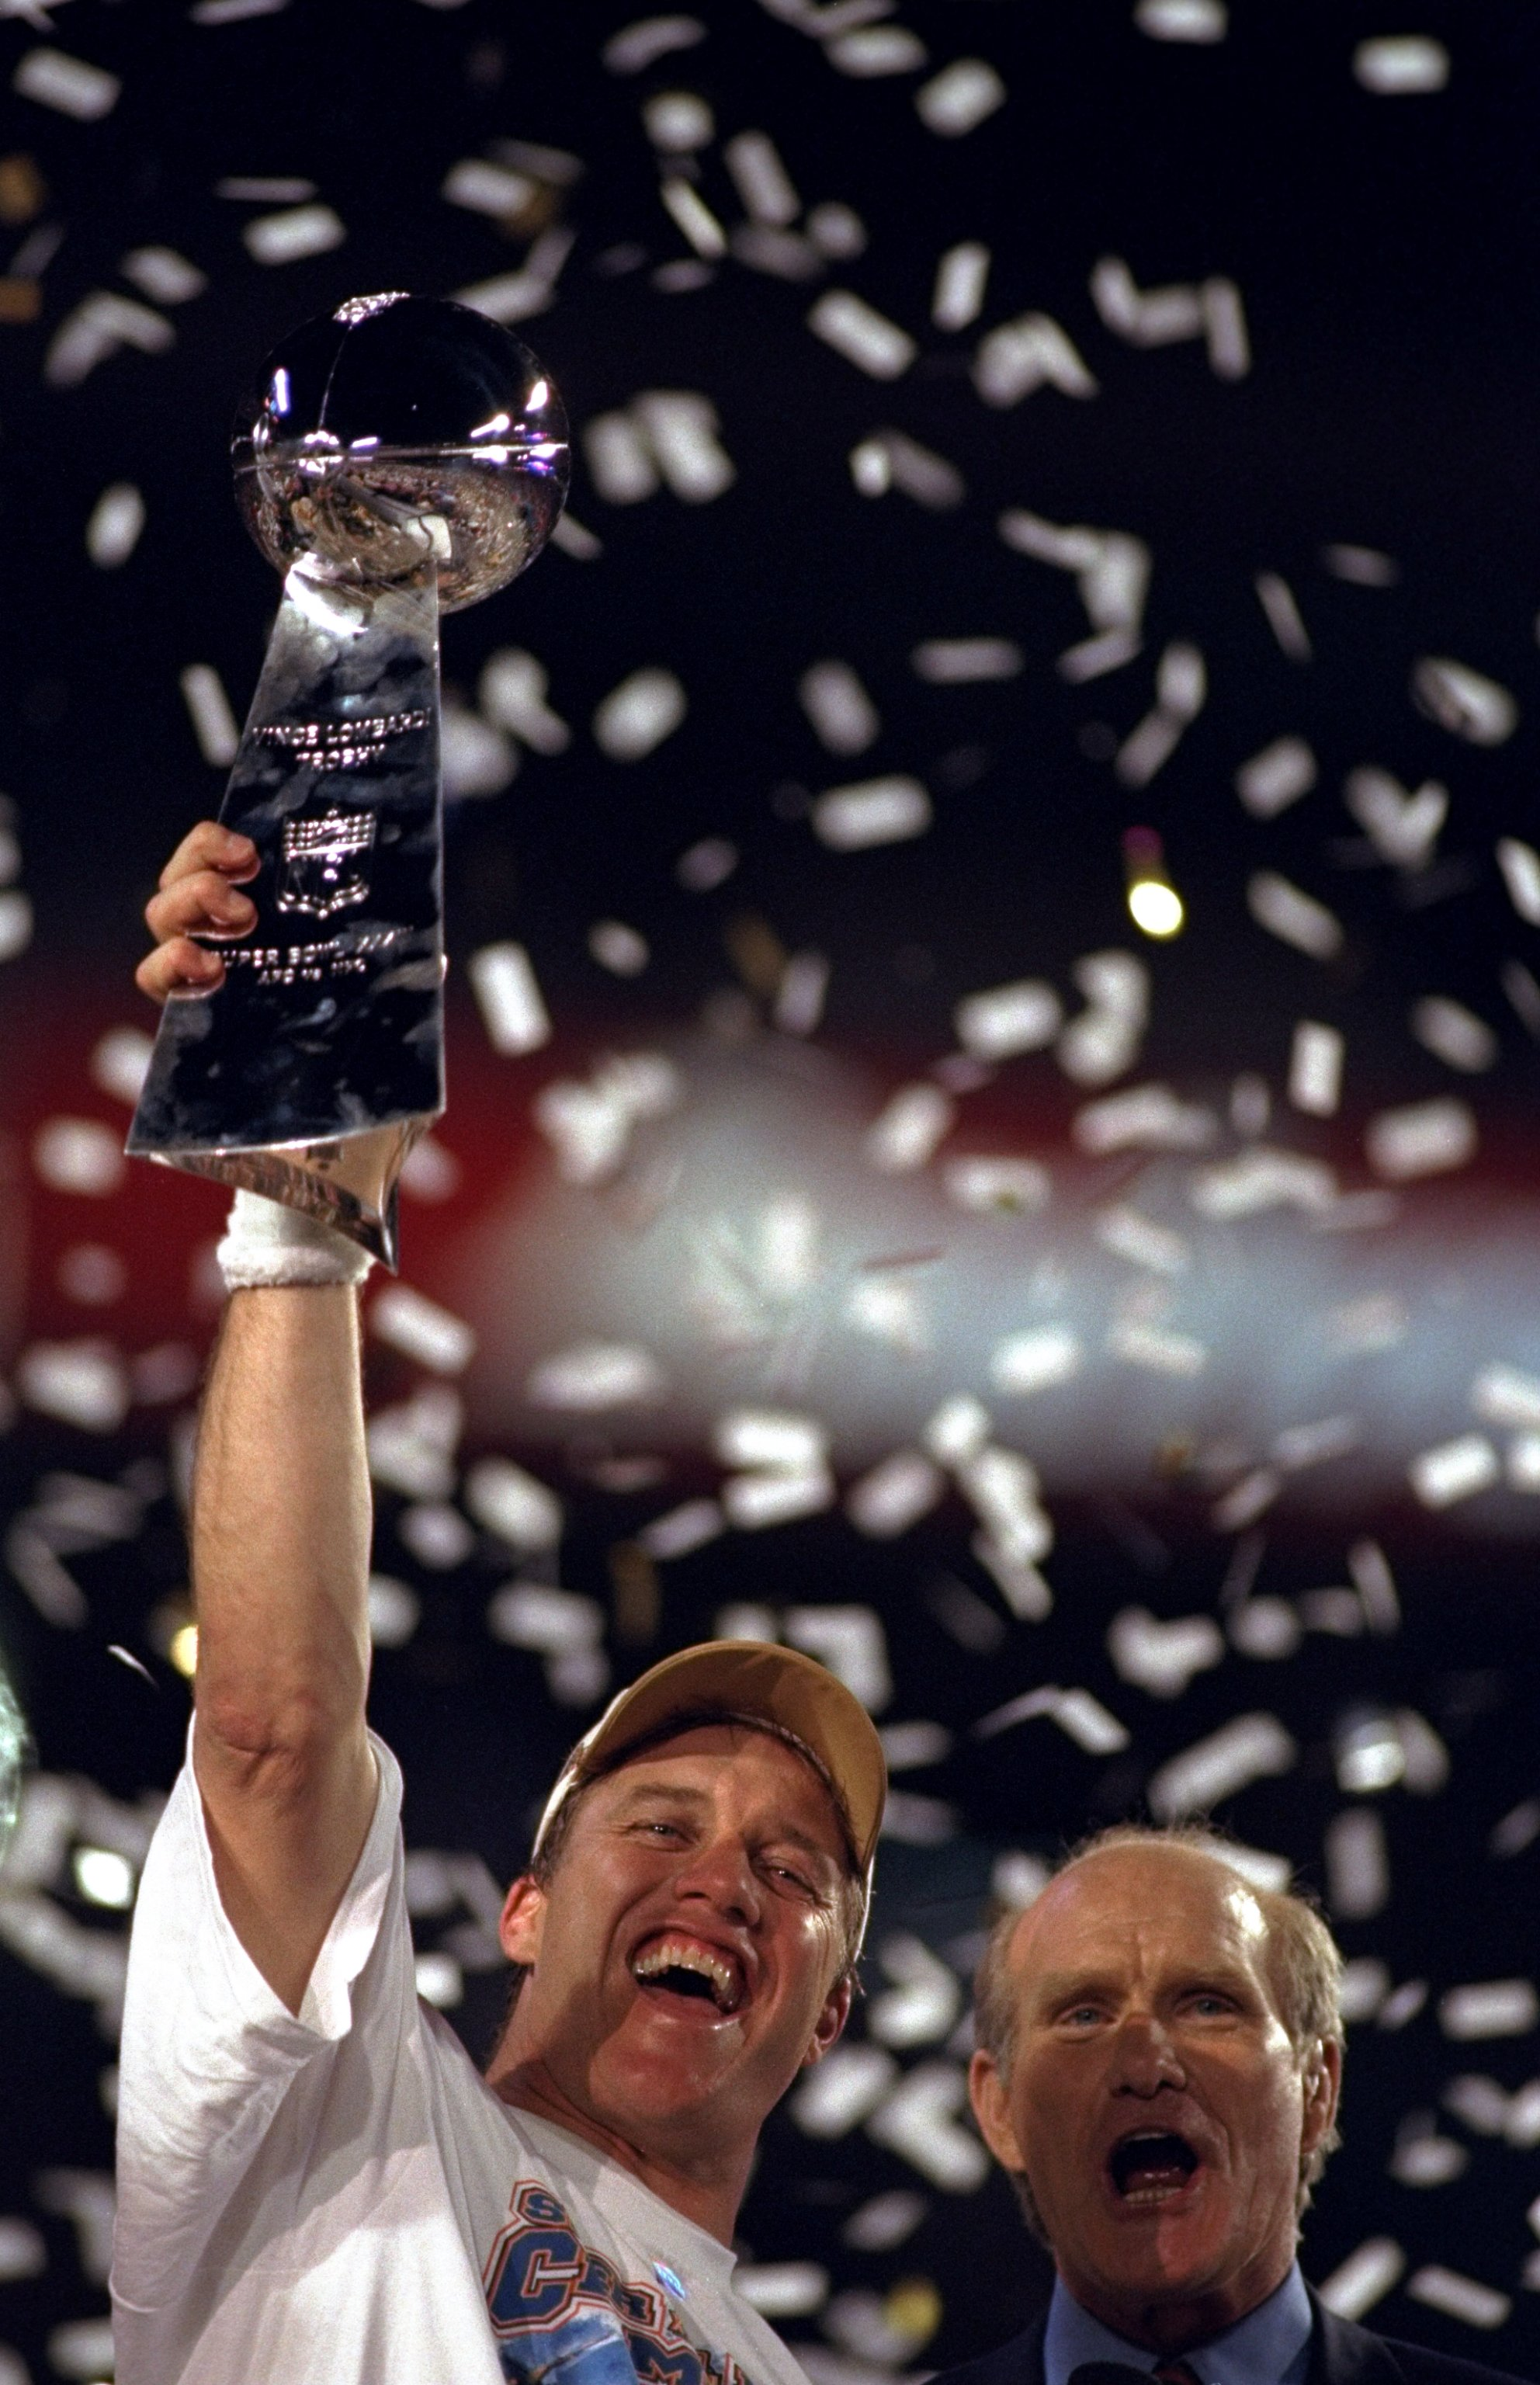 31 Jan 1999: Fox Sports TV analyst Terry Bradshaw cheers as confetti rains down on quarterback John Elway #7 of the Denver Broncos as he lifts the Vince Lombardi Trophy after defeating the Atlanta Falcons to win Super Bowl XXXIII at Pro Player Stadium in